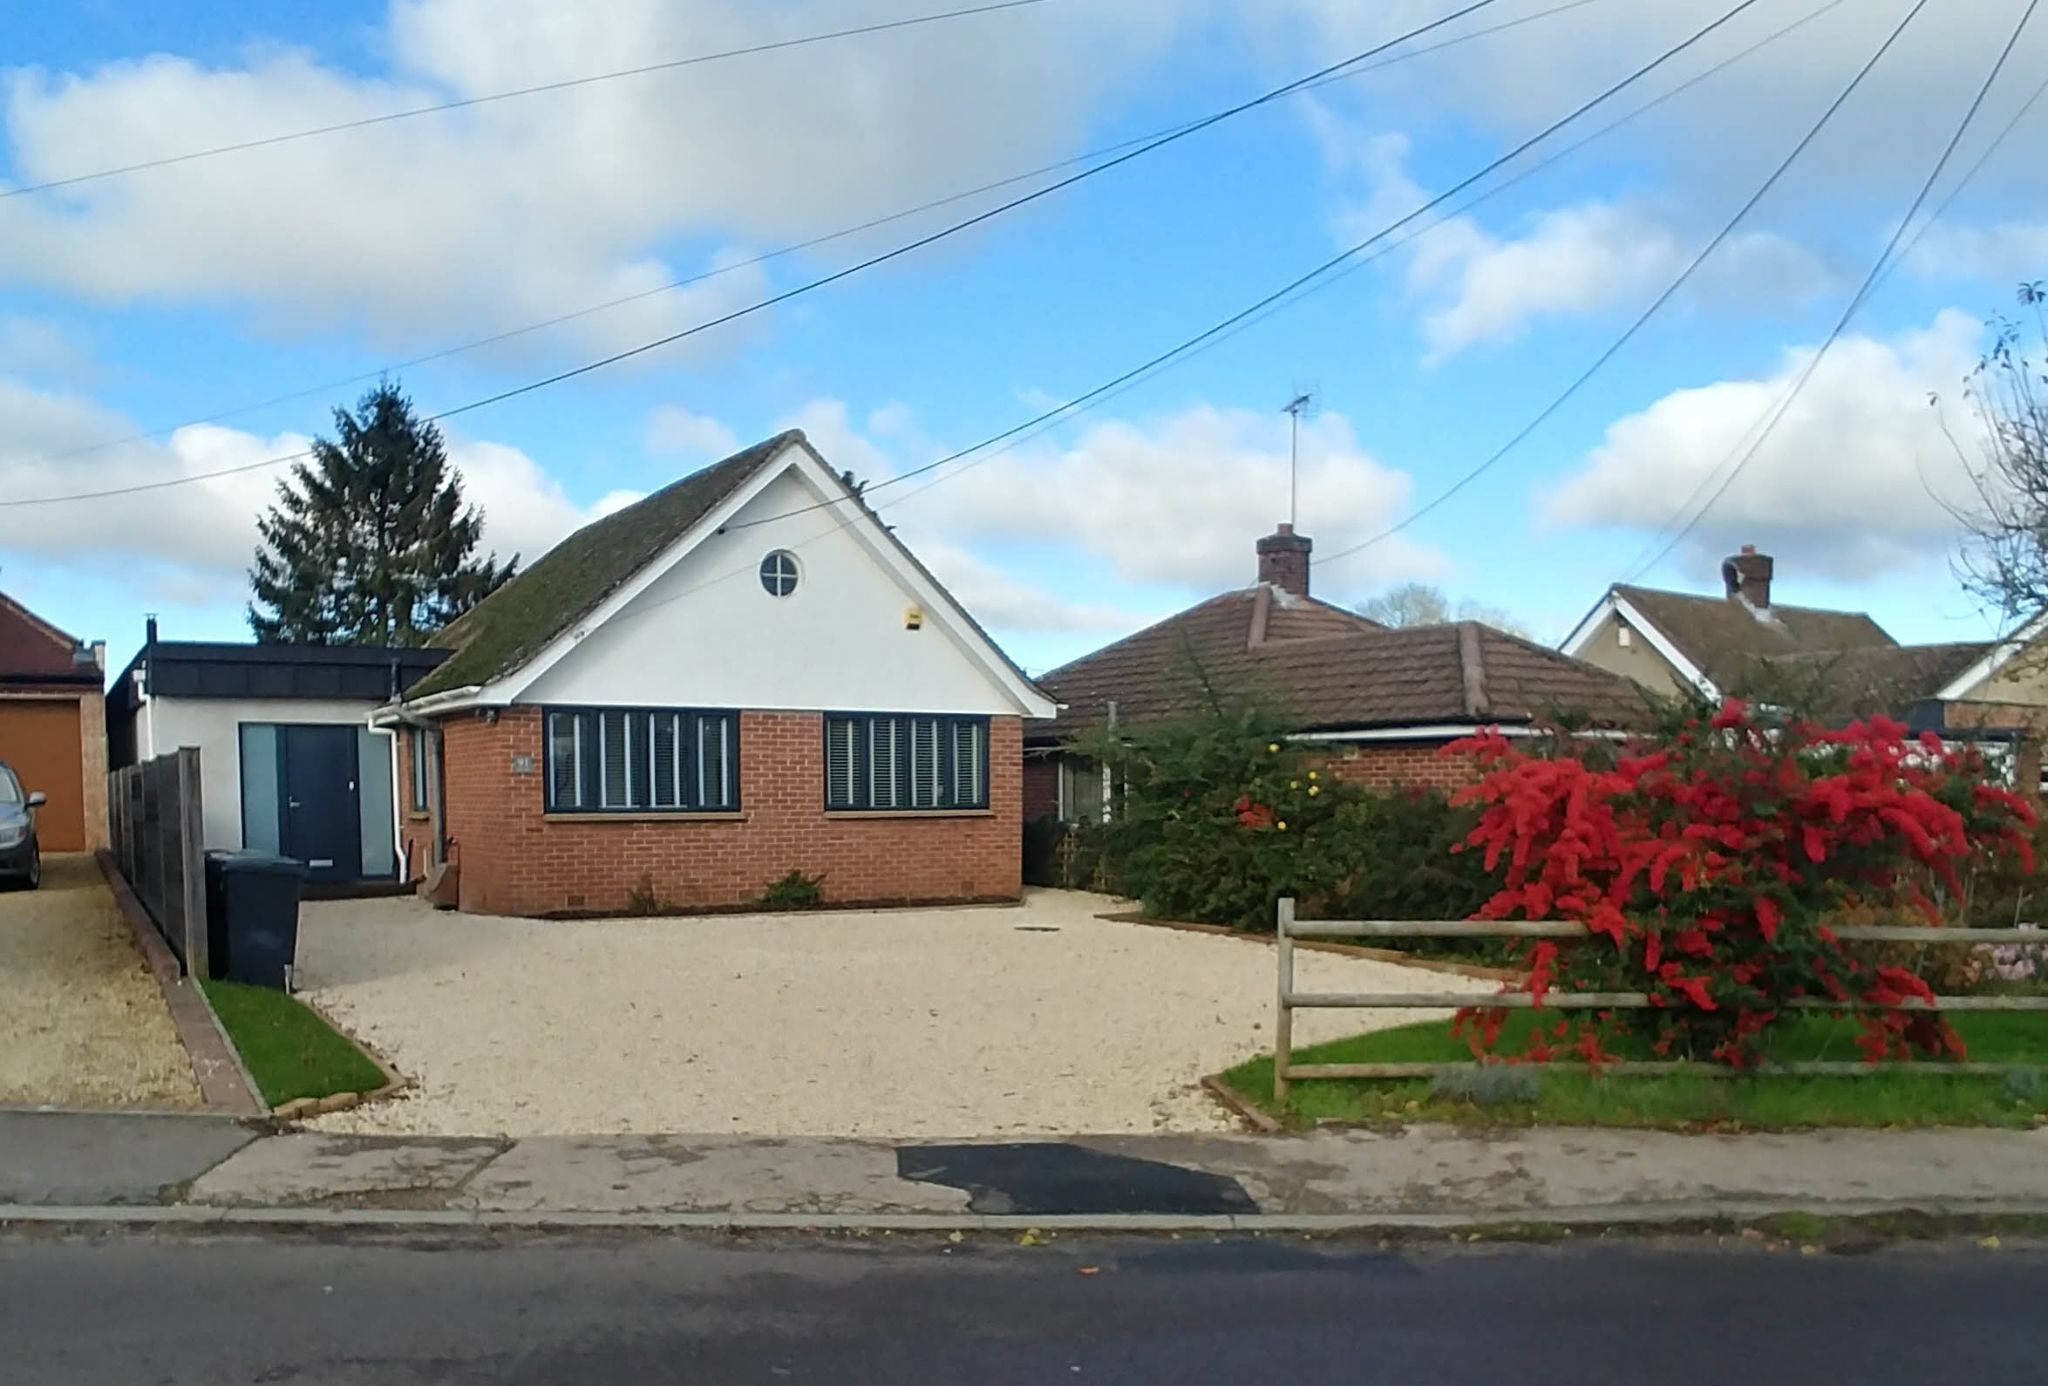 4 Bedroom Detached House For Sale - From the street